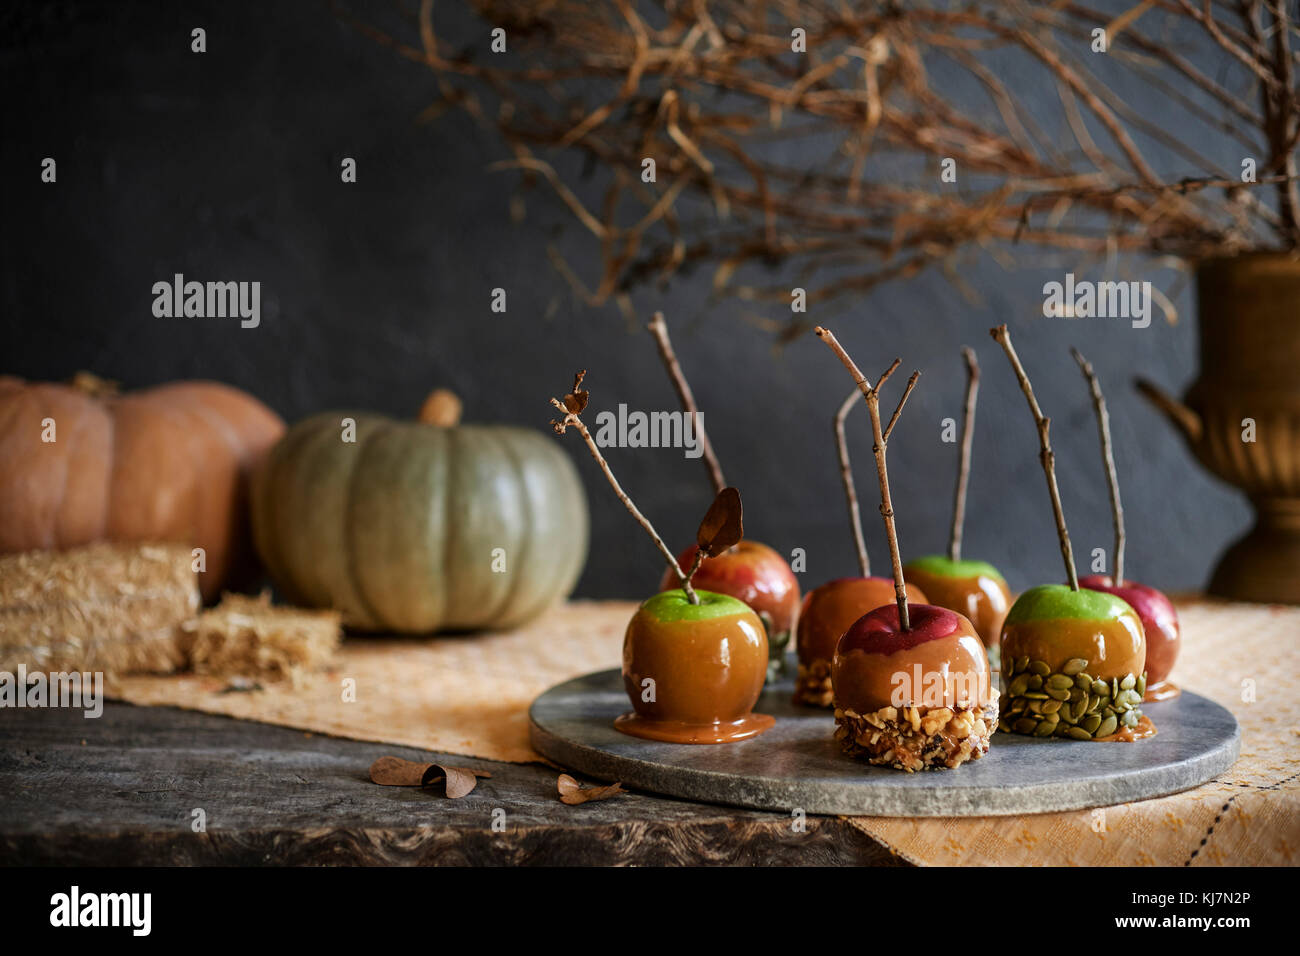 Marble tray of caramel apples with fall decor in the background. Moody and fall themed. - Stock Image